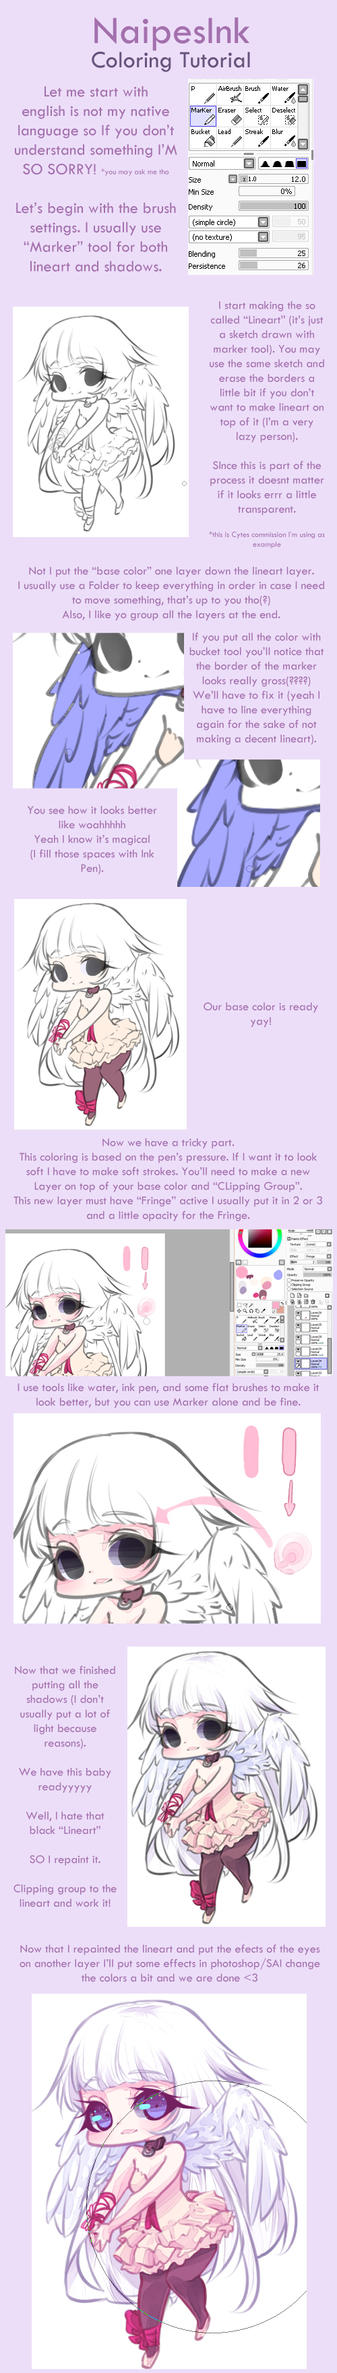 Coloring Tutorial by NaipesInk